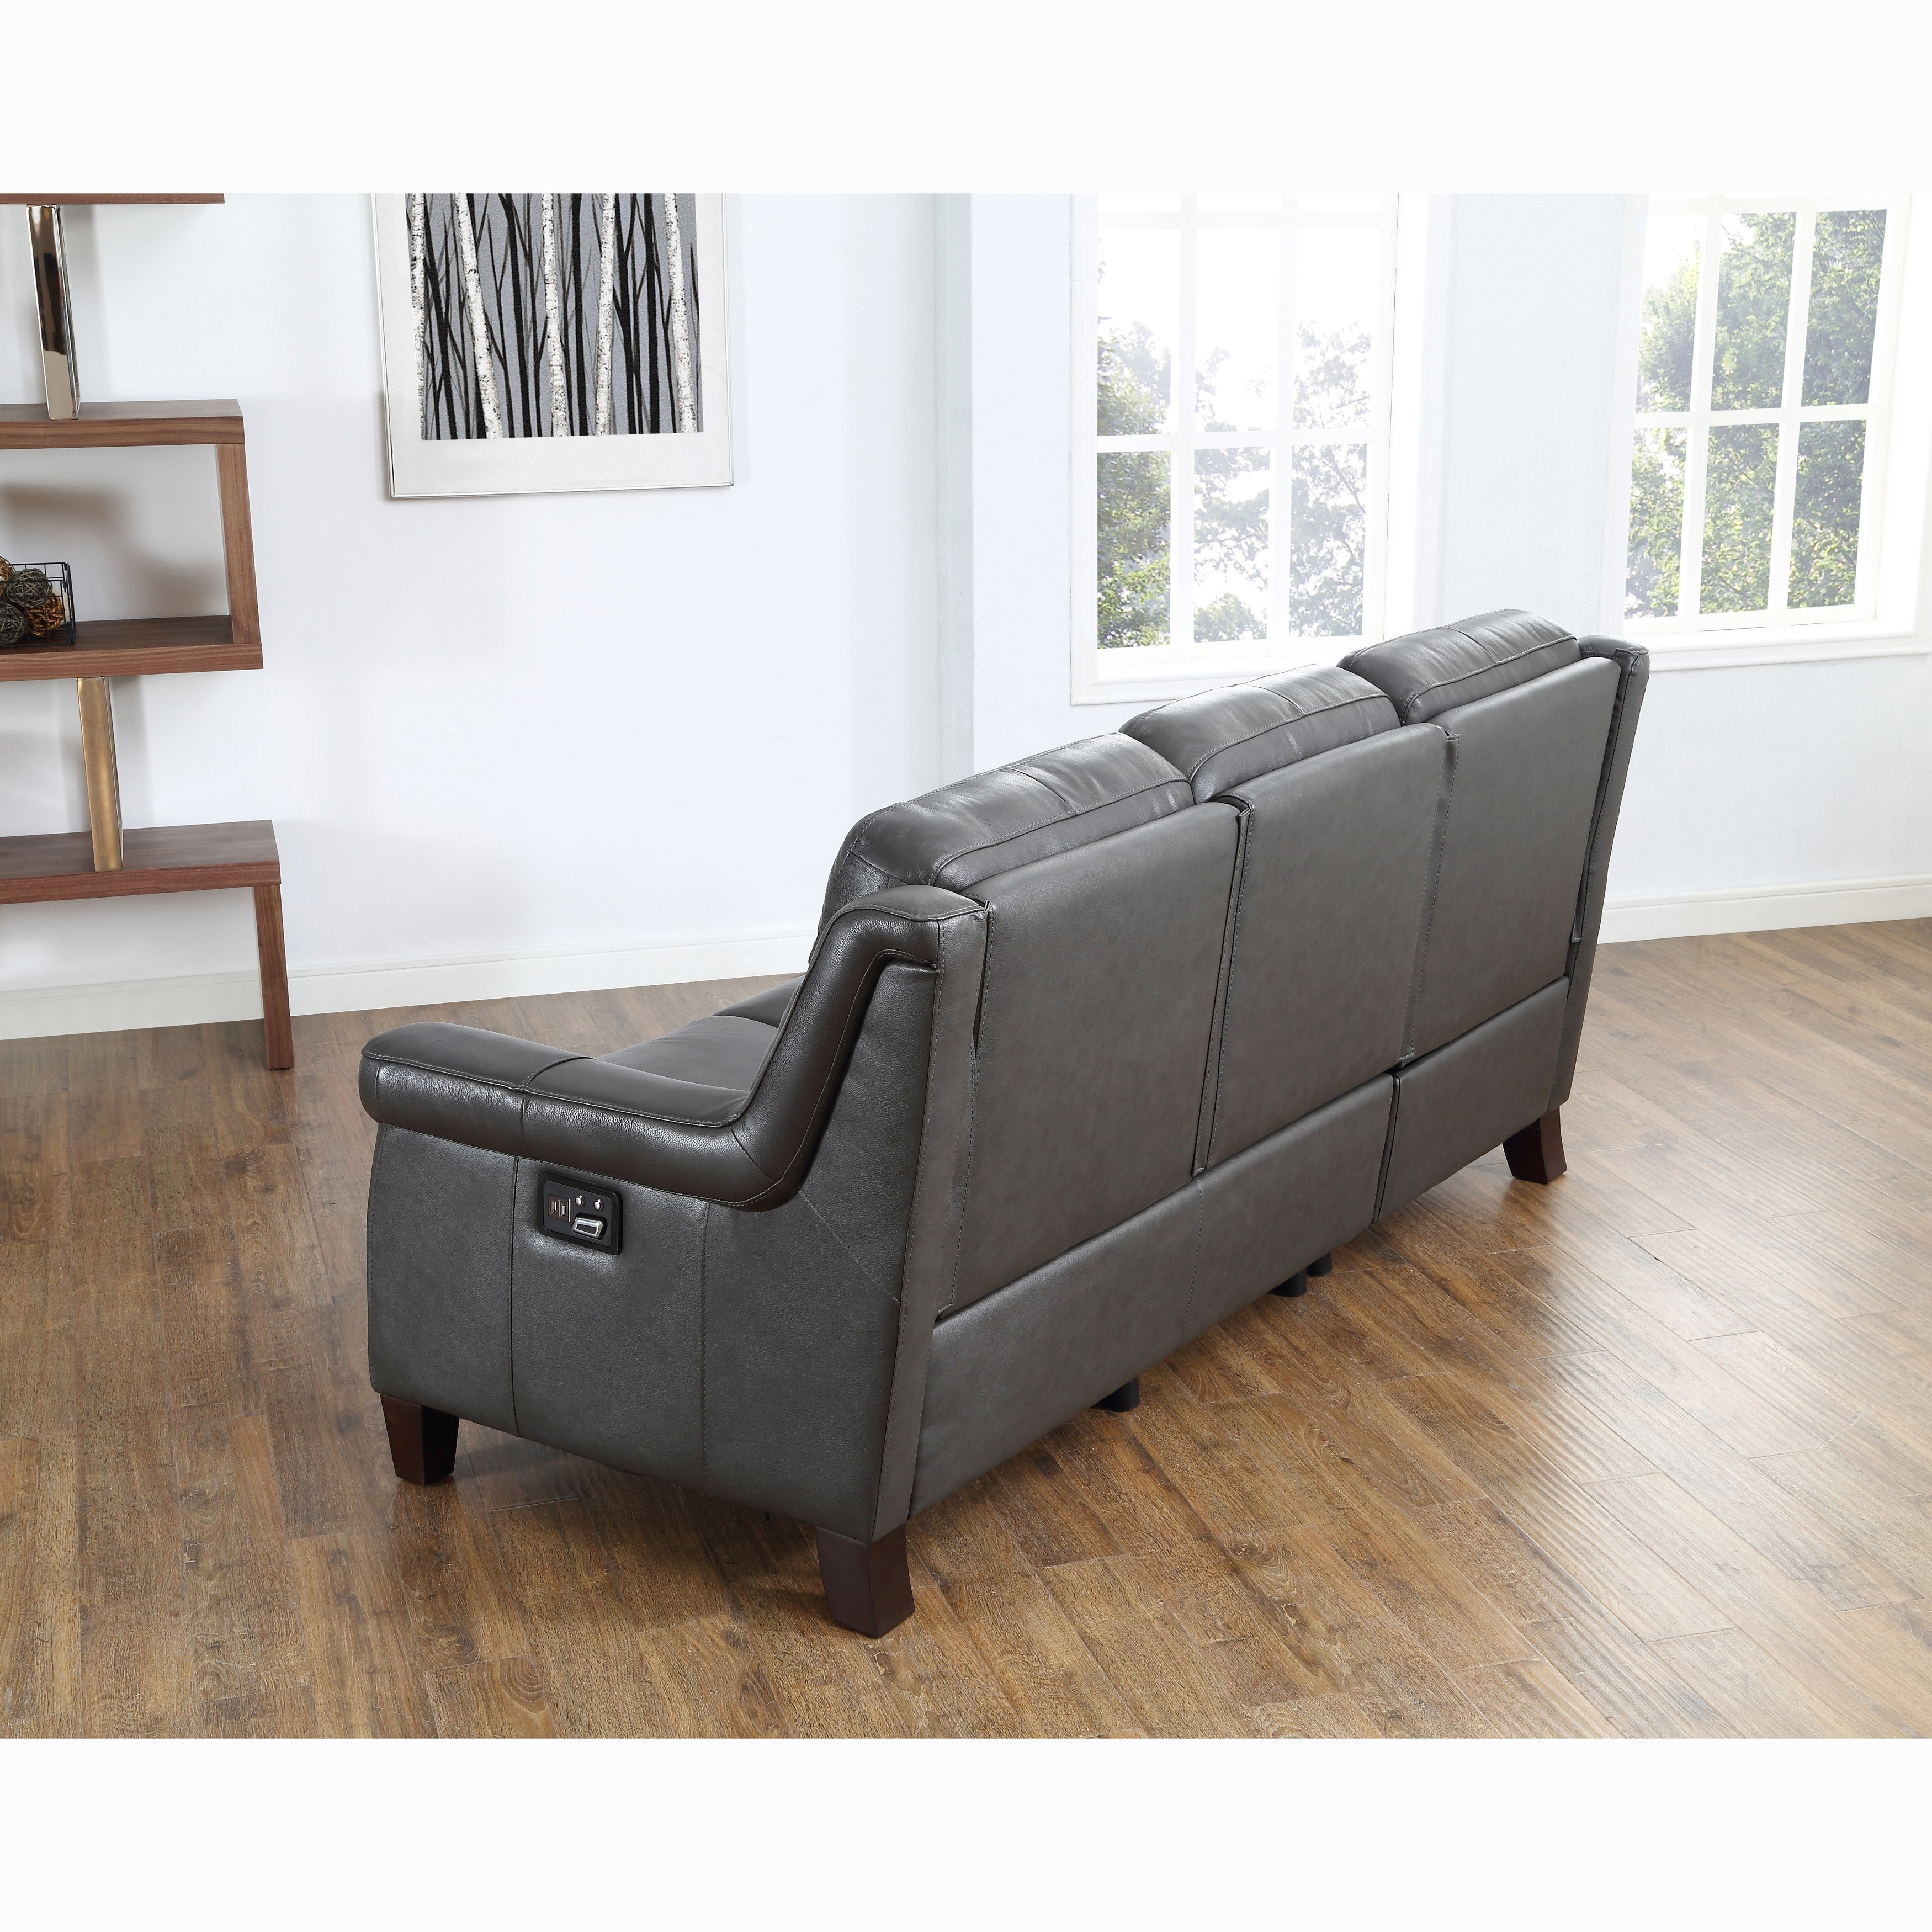 Grey Leather Power Reclining Sofa – Review Home Decor Throughout Clyde Grey Leather 3 Piece Power Reclining Sectionals With Pwr Hdrst & Usb (View 20 of 25)